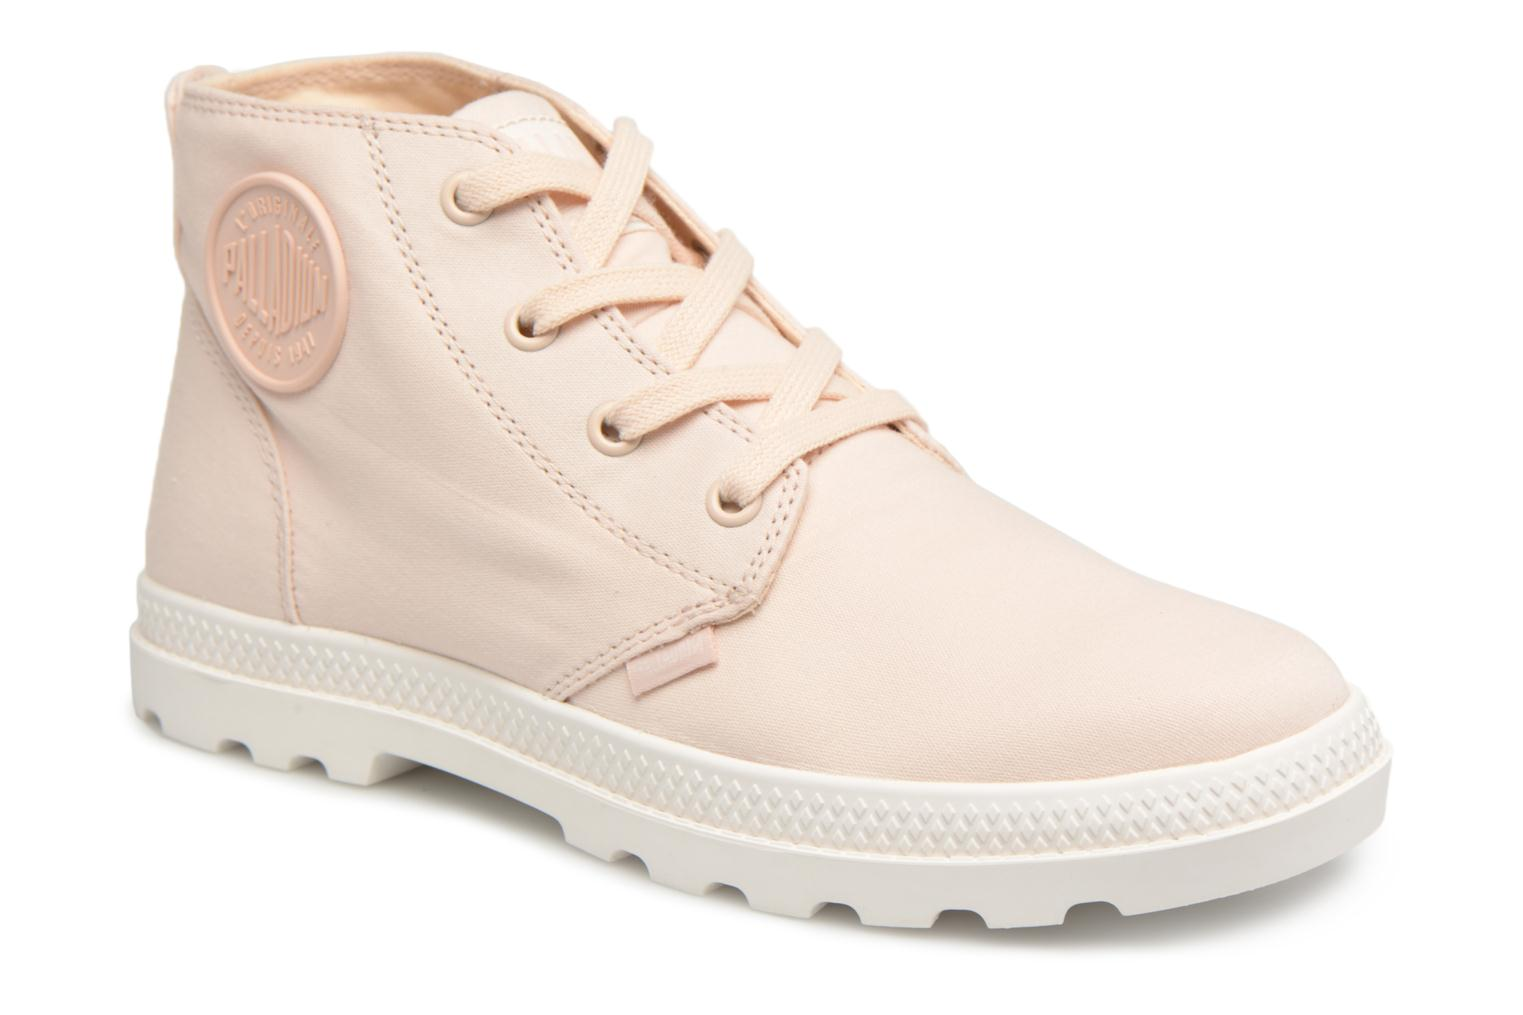 Palladium Pampa Free Cvsw (Rose) - Baskets chez Sarenza (323499)